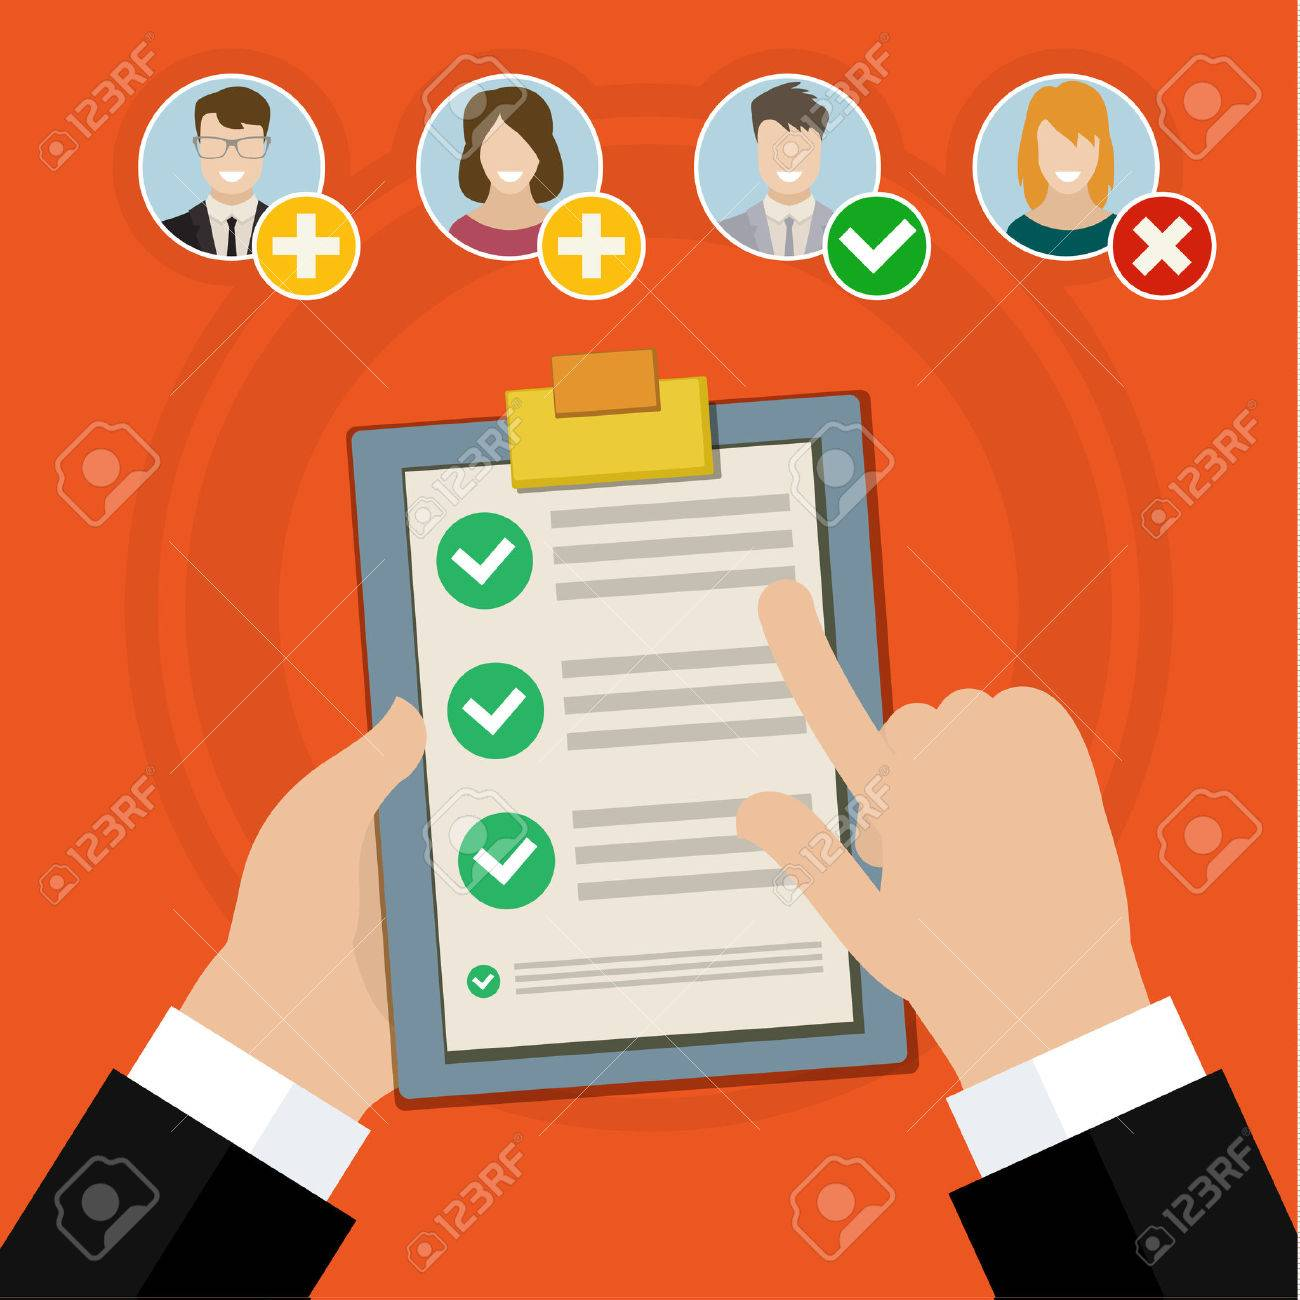 Flat design vector business illustration concept Candidate qualification job interview and check list. - 48679523